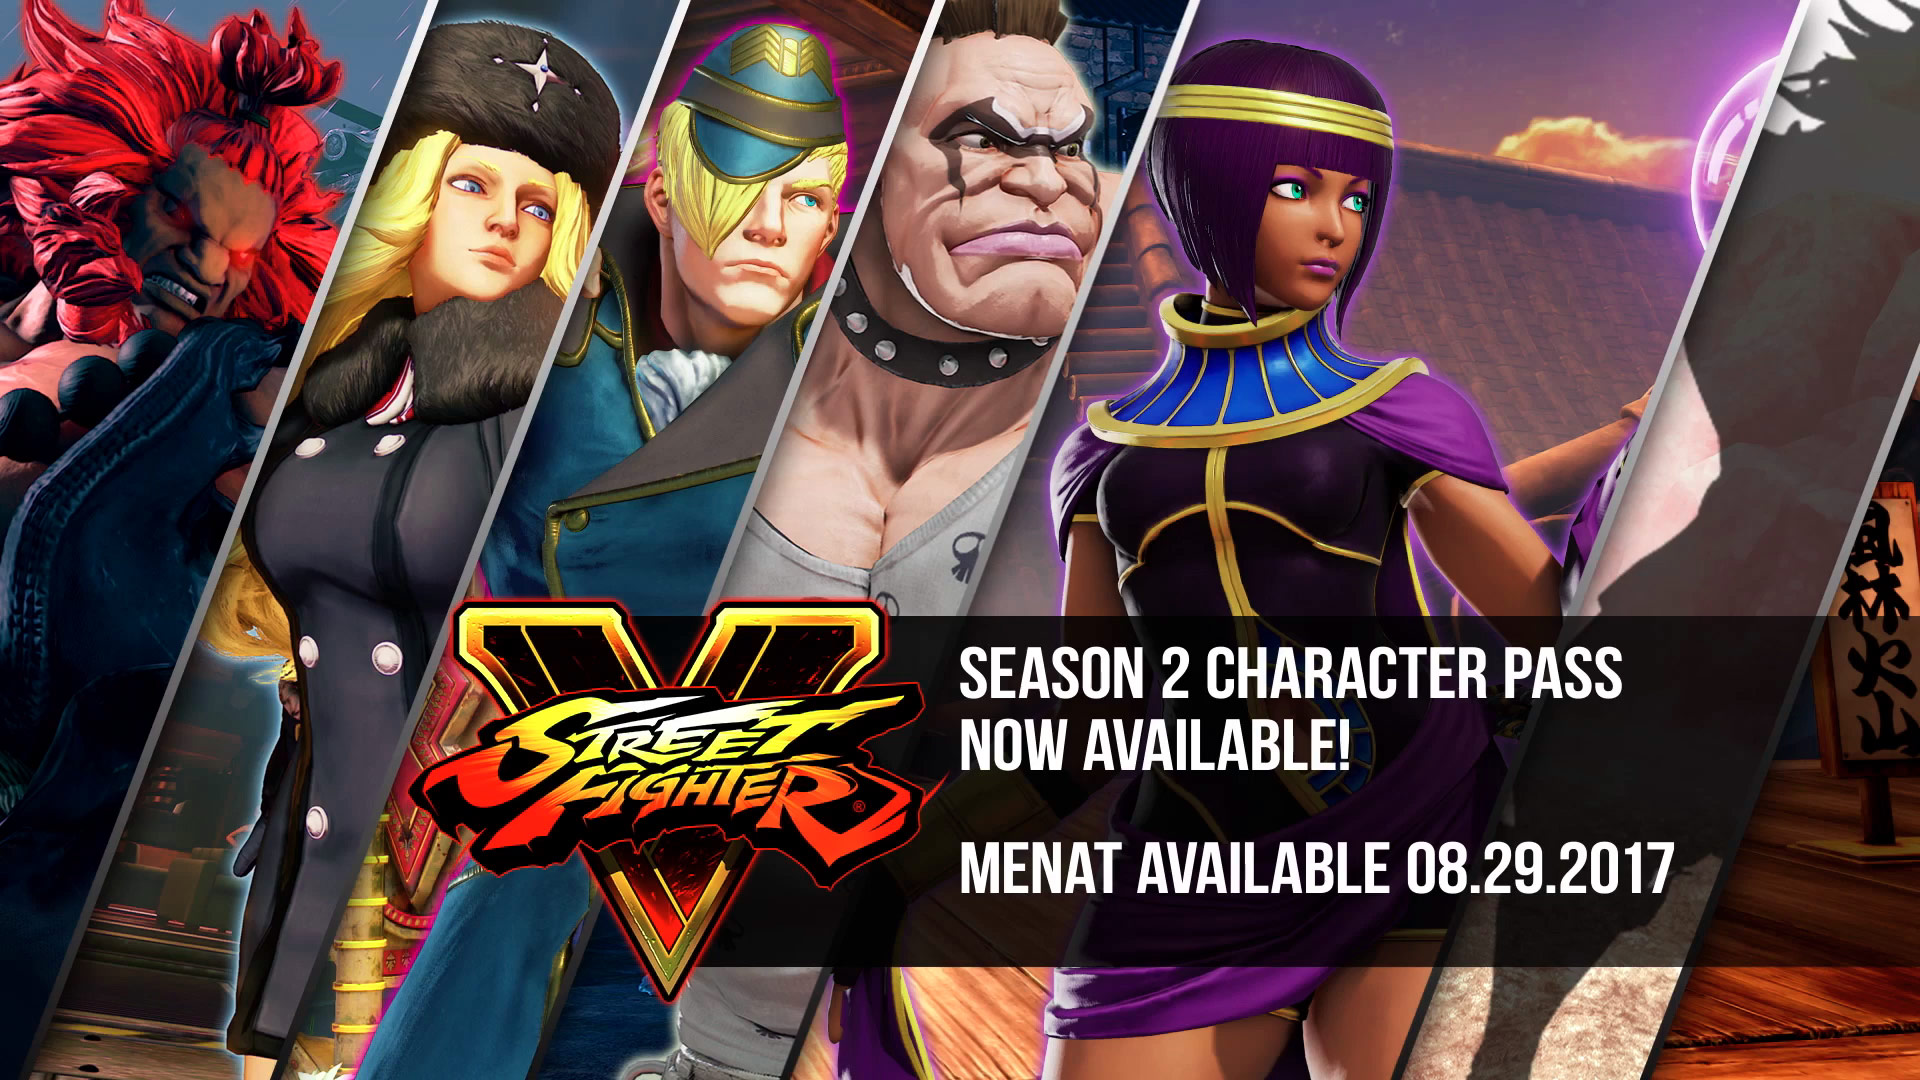 Menat announced for Street Fighter 5 reveal images 6 out of 6 image gallery